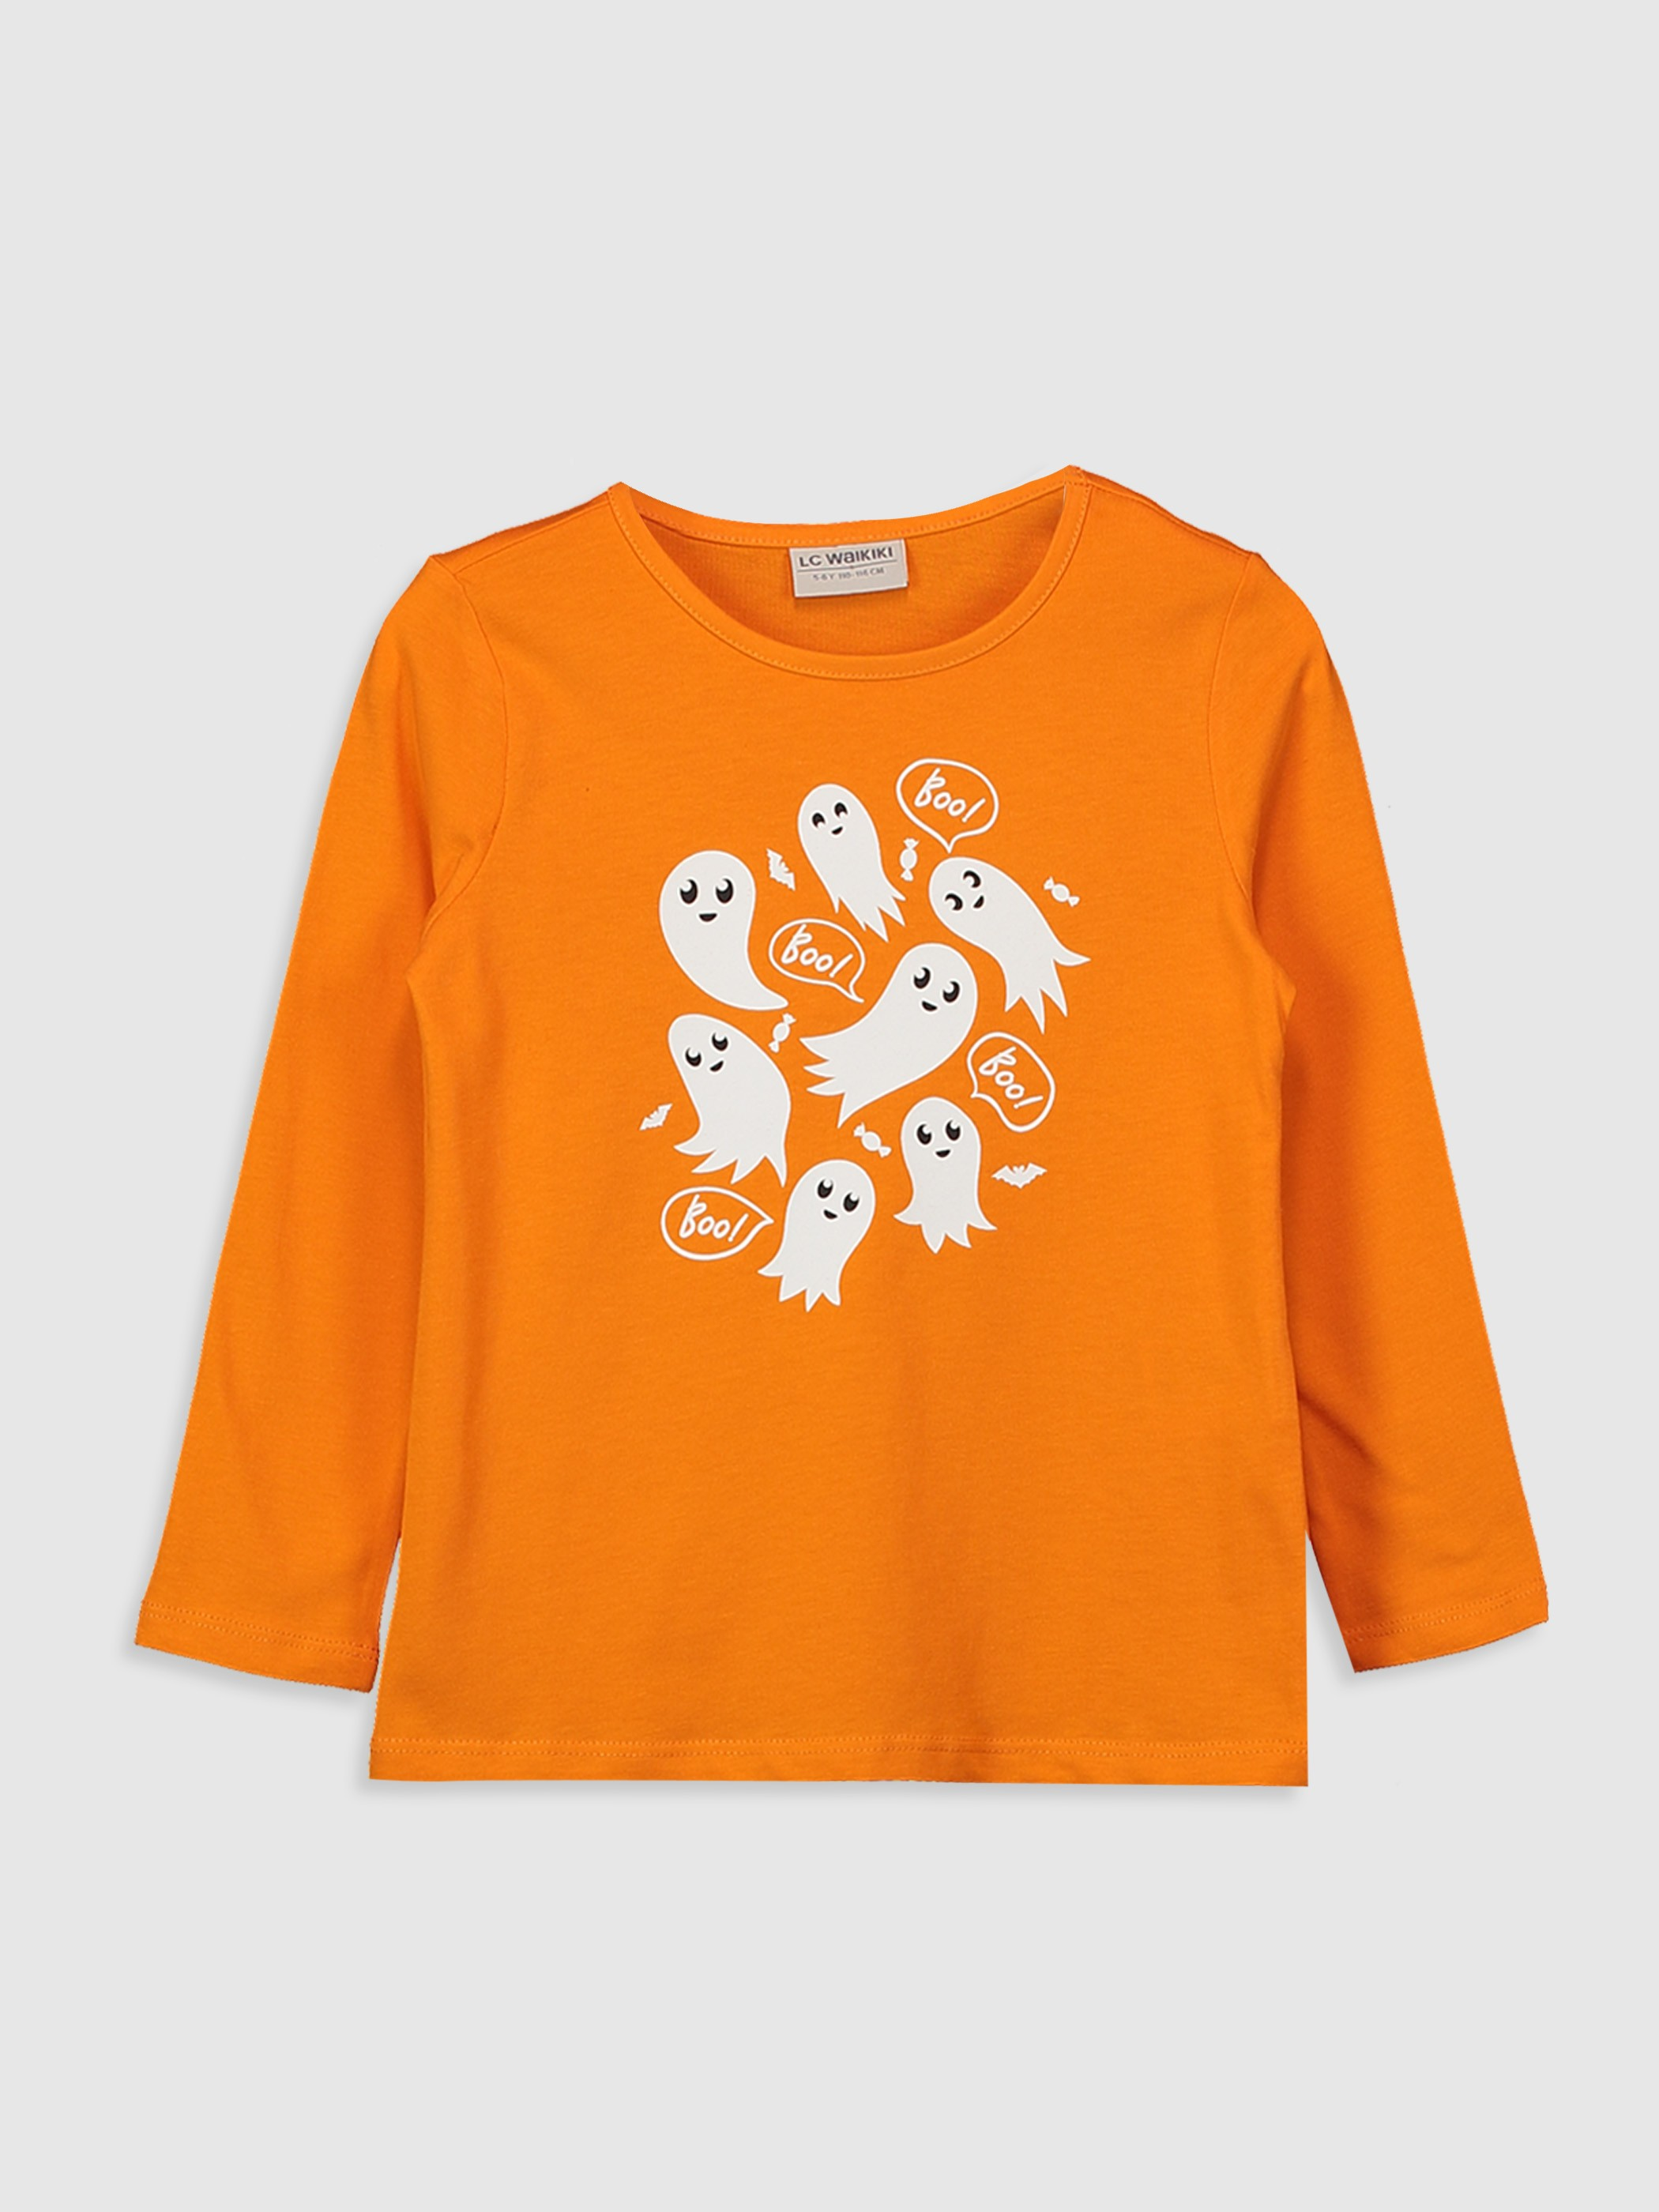 ORANGE - Girl's Printed Cotton T-Shirt - 0W6132Z4